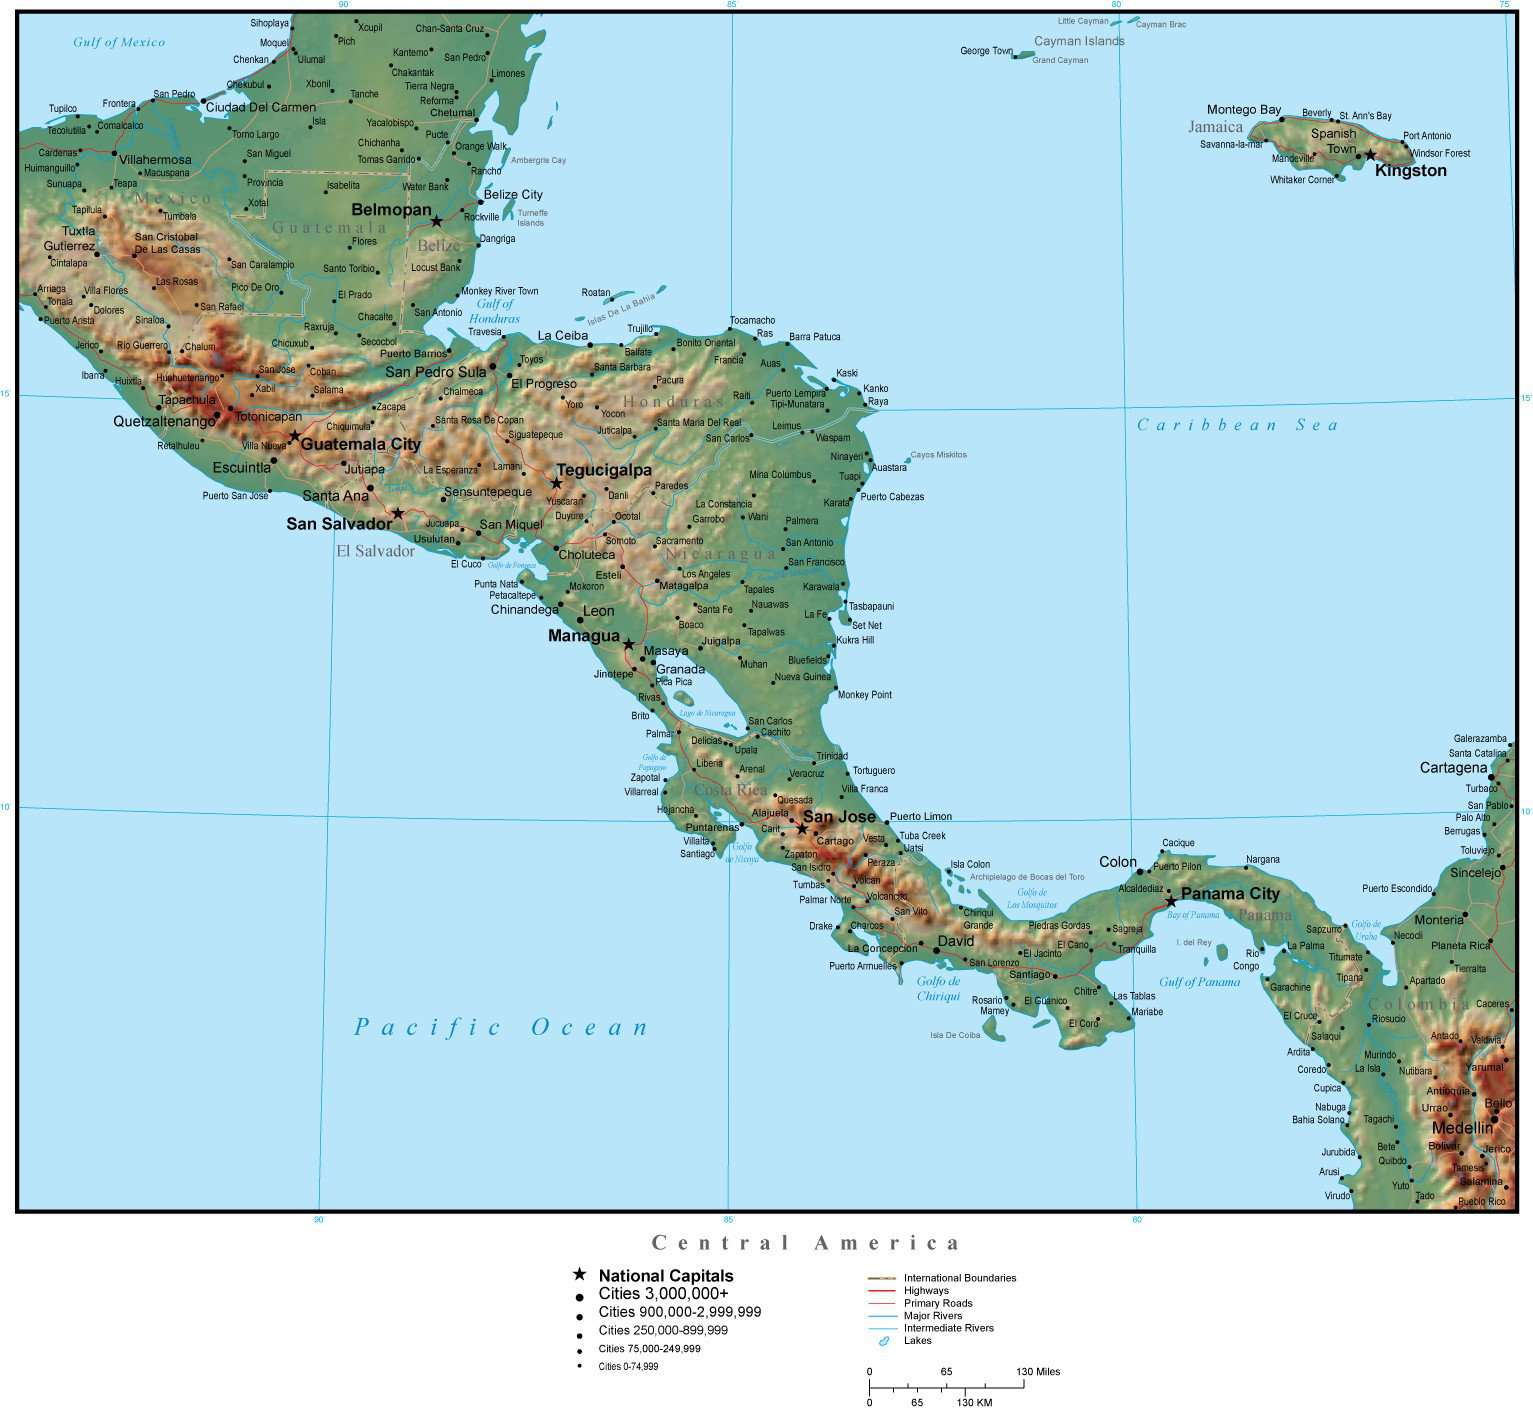 Central America Terrain map in Adobe Illustrator vector format with ...